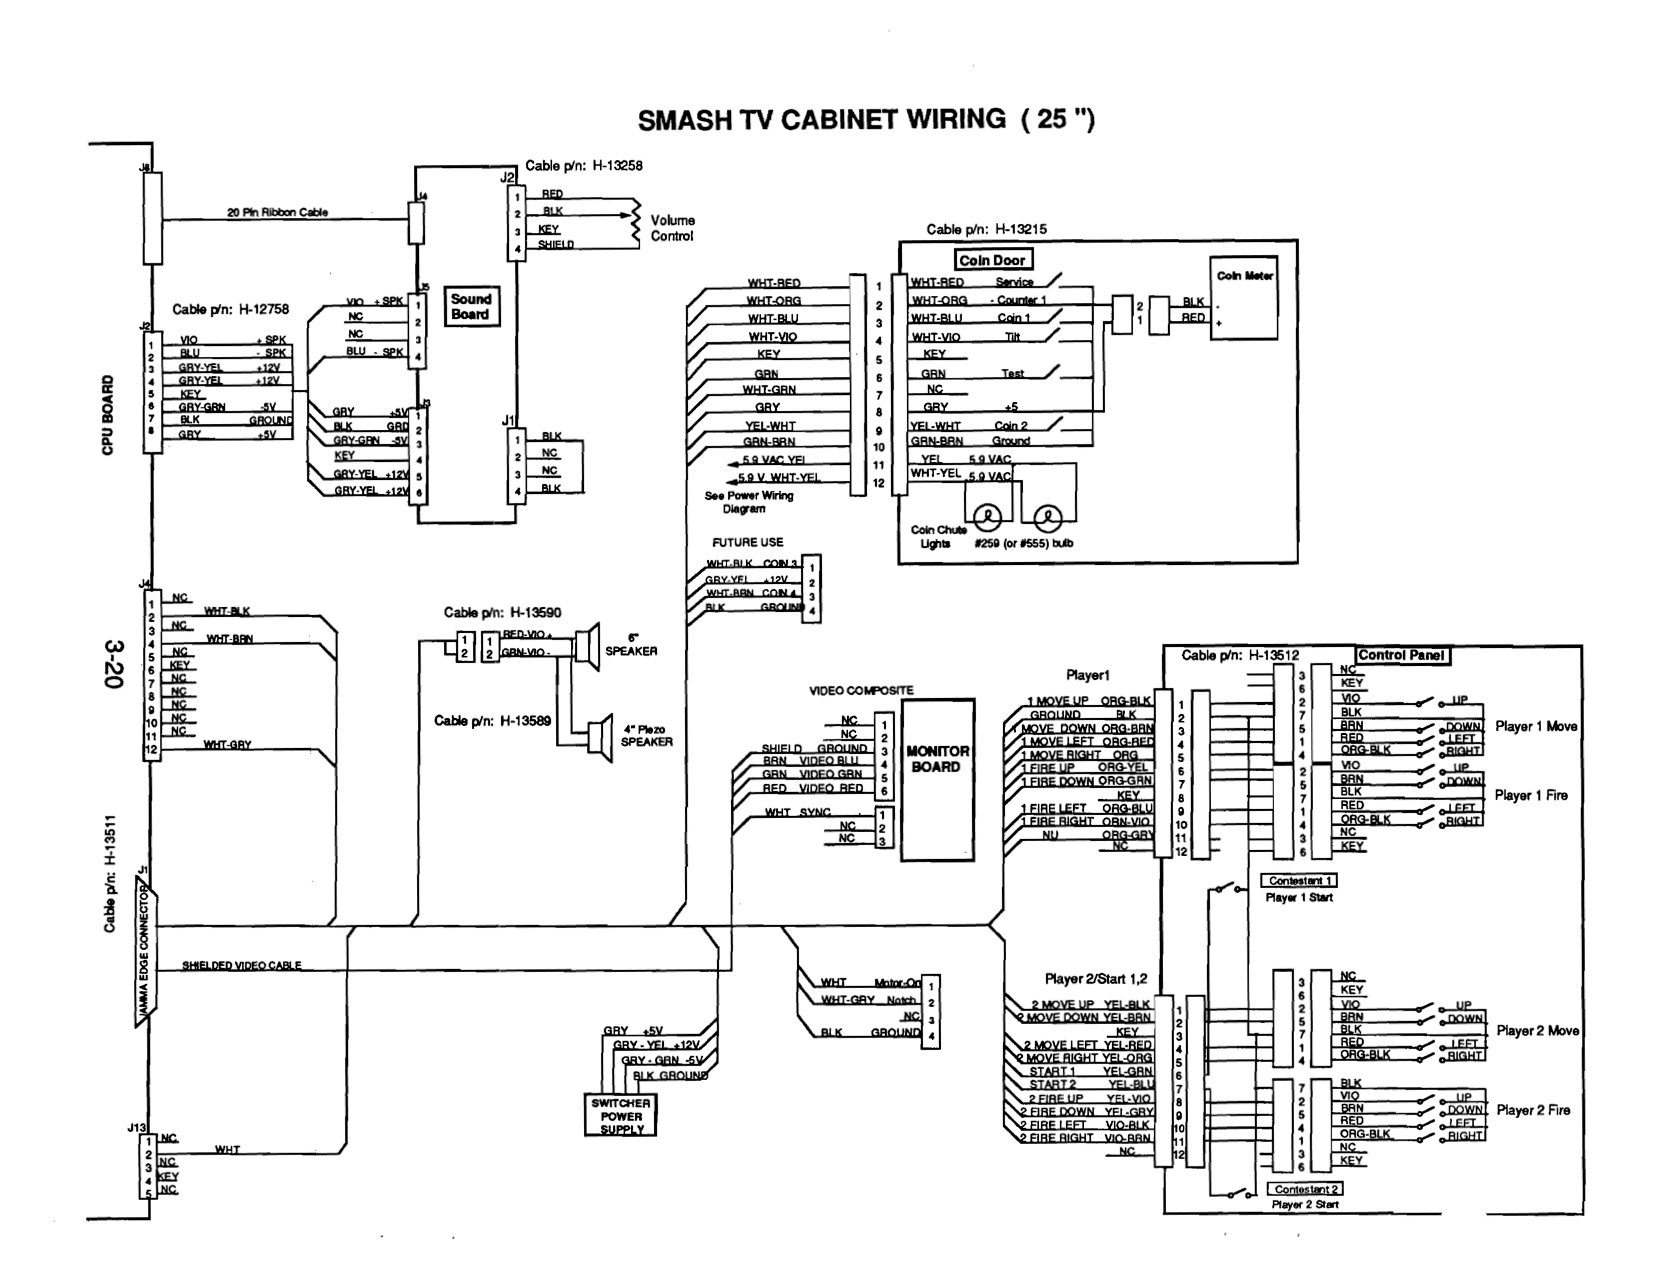 Smash TV Cabinet Wiring Diagram